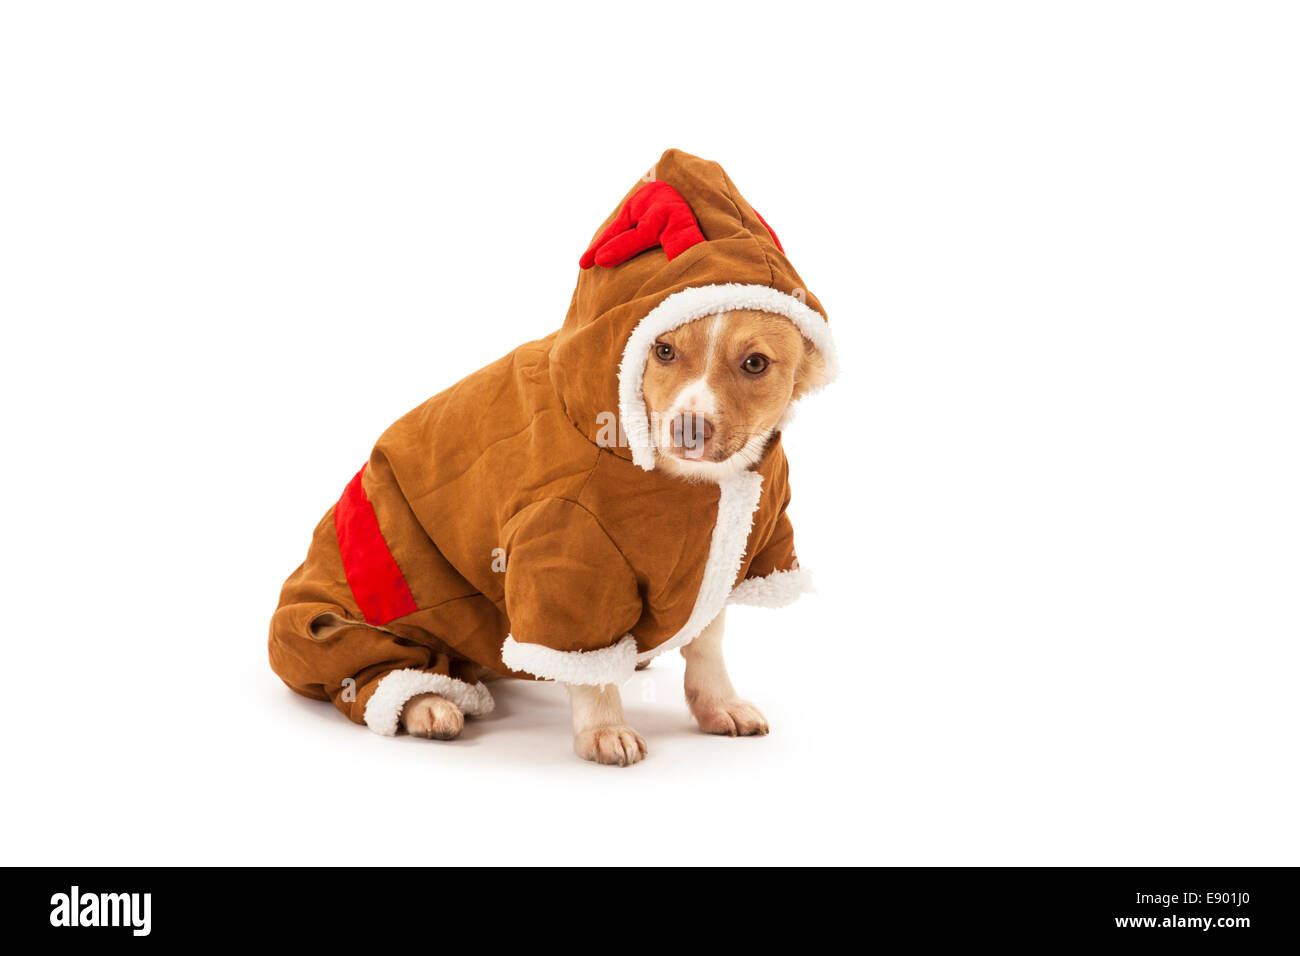 Portrait of dog in reindeer costume over white background - Stock Image